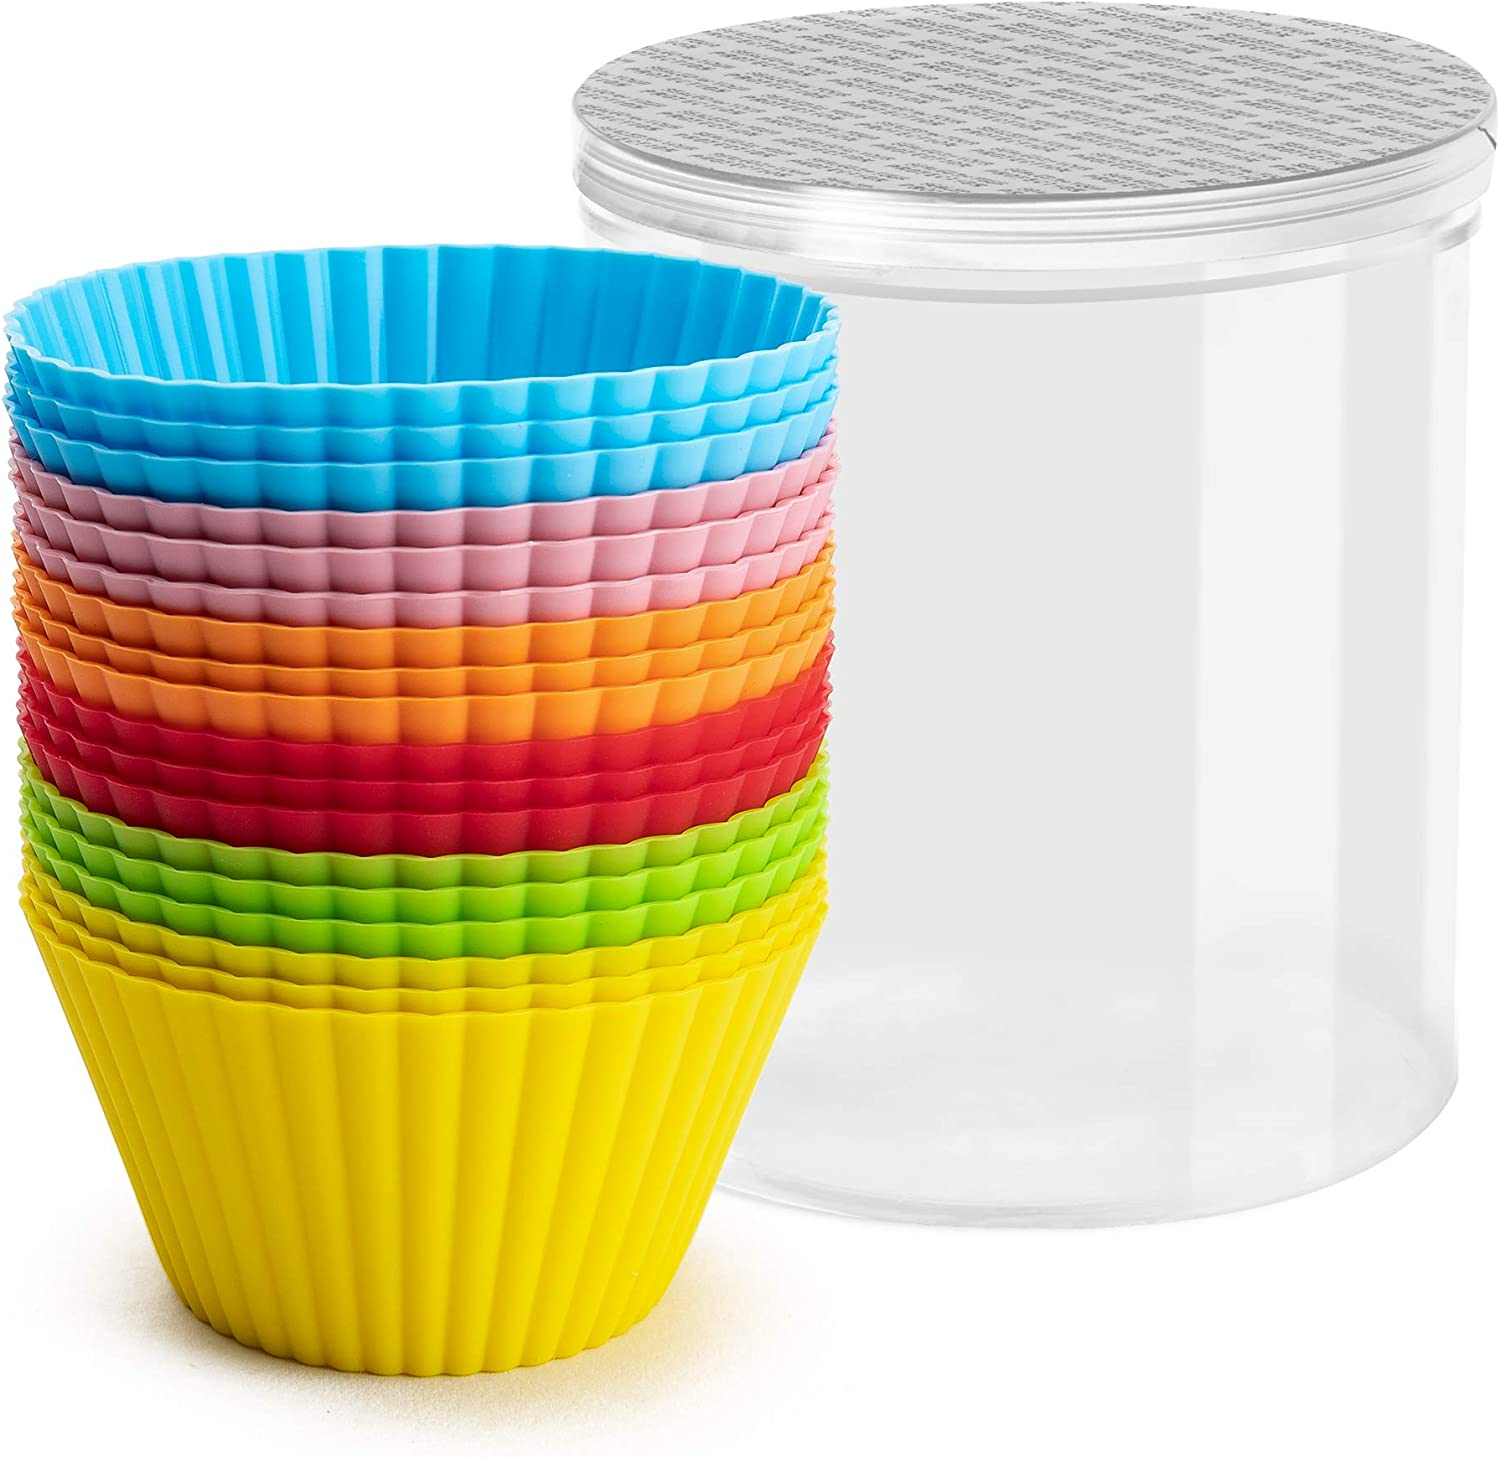 R HORSE 18 Pcs Jumbo Silicone inch Cheap mail order specialty store 3.54 Non-St Lagre Baking Don't miss the campaign Cups